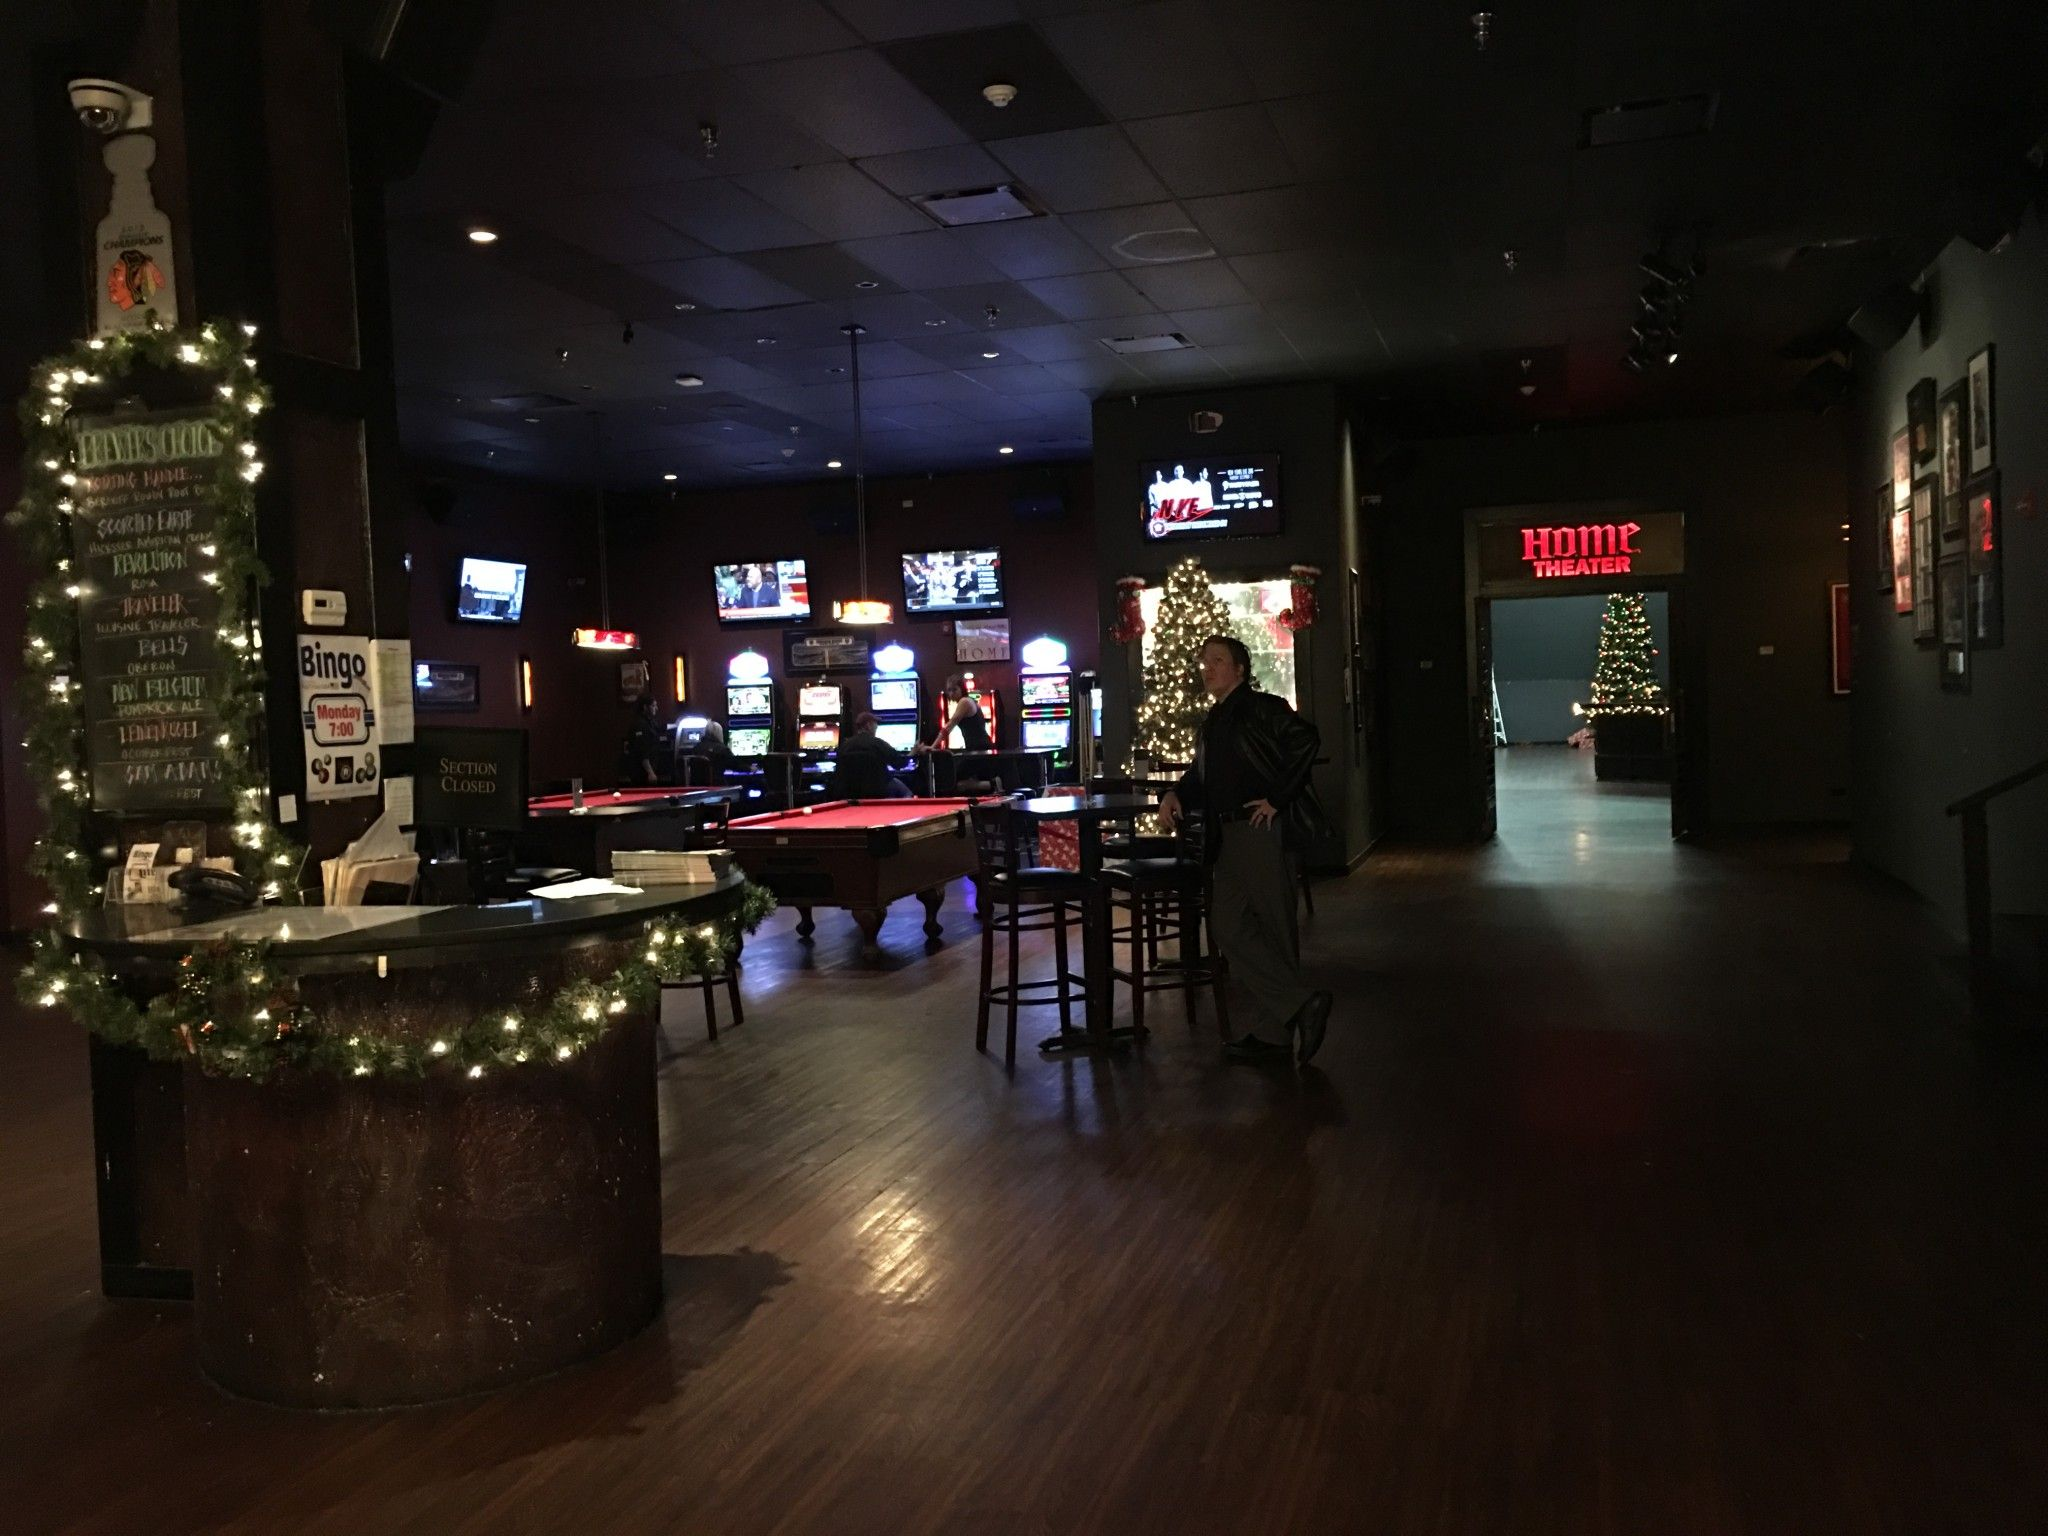 Arlington Heights Home Bar Dueling Pianos Event Dueling Piano